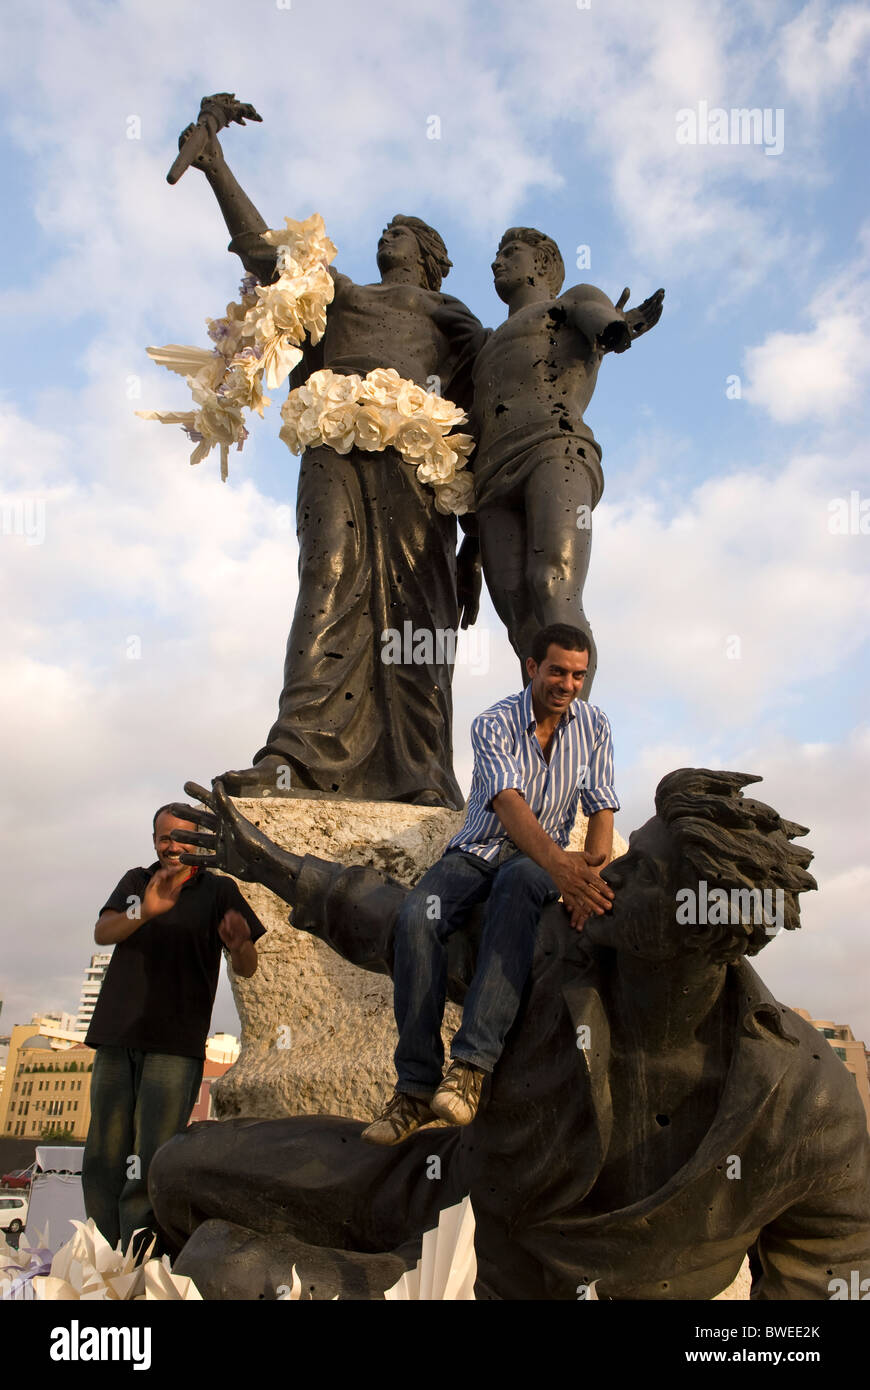 Martyrs' Square statue garlanded with flowers in preparation for a evening fashion show, Downtown, Beirut, LEBANON. - Stock Image